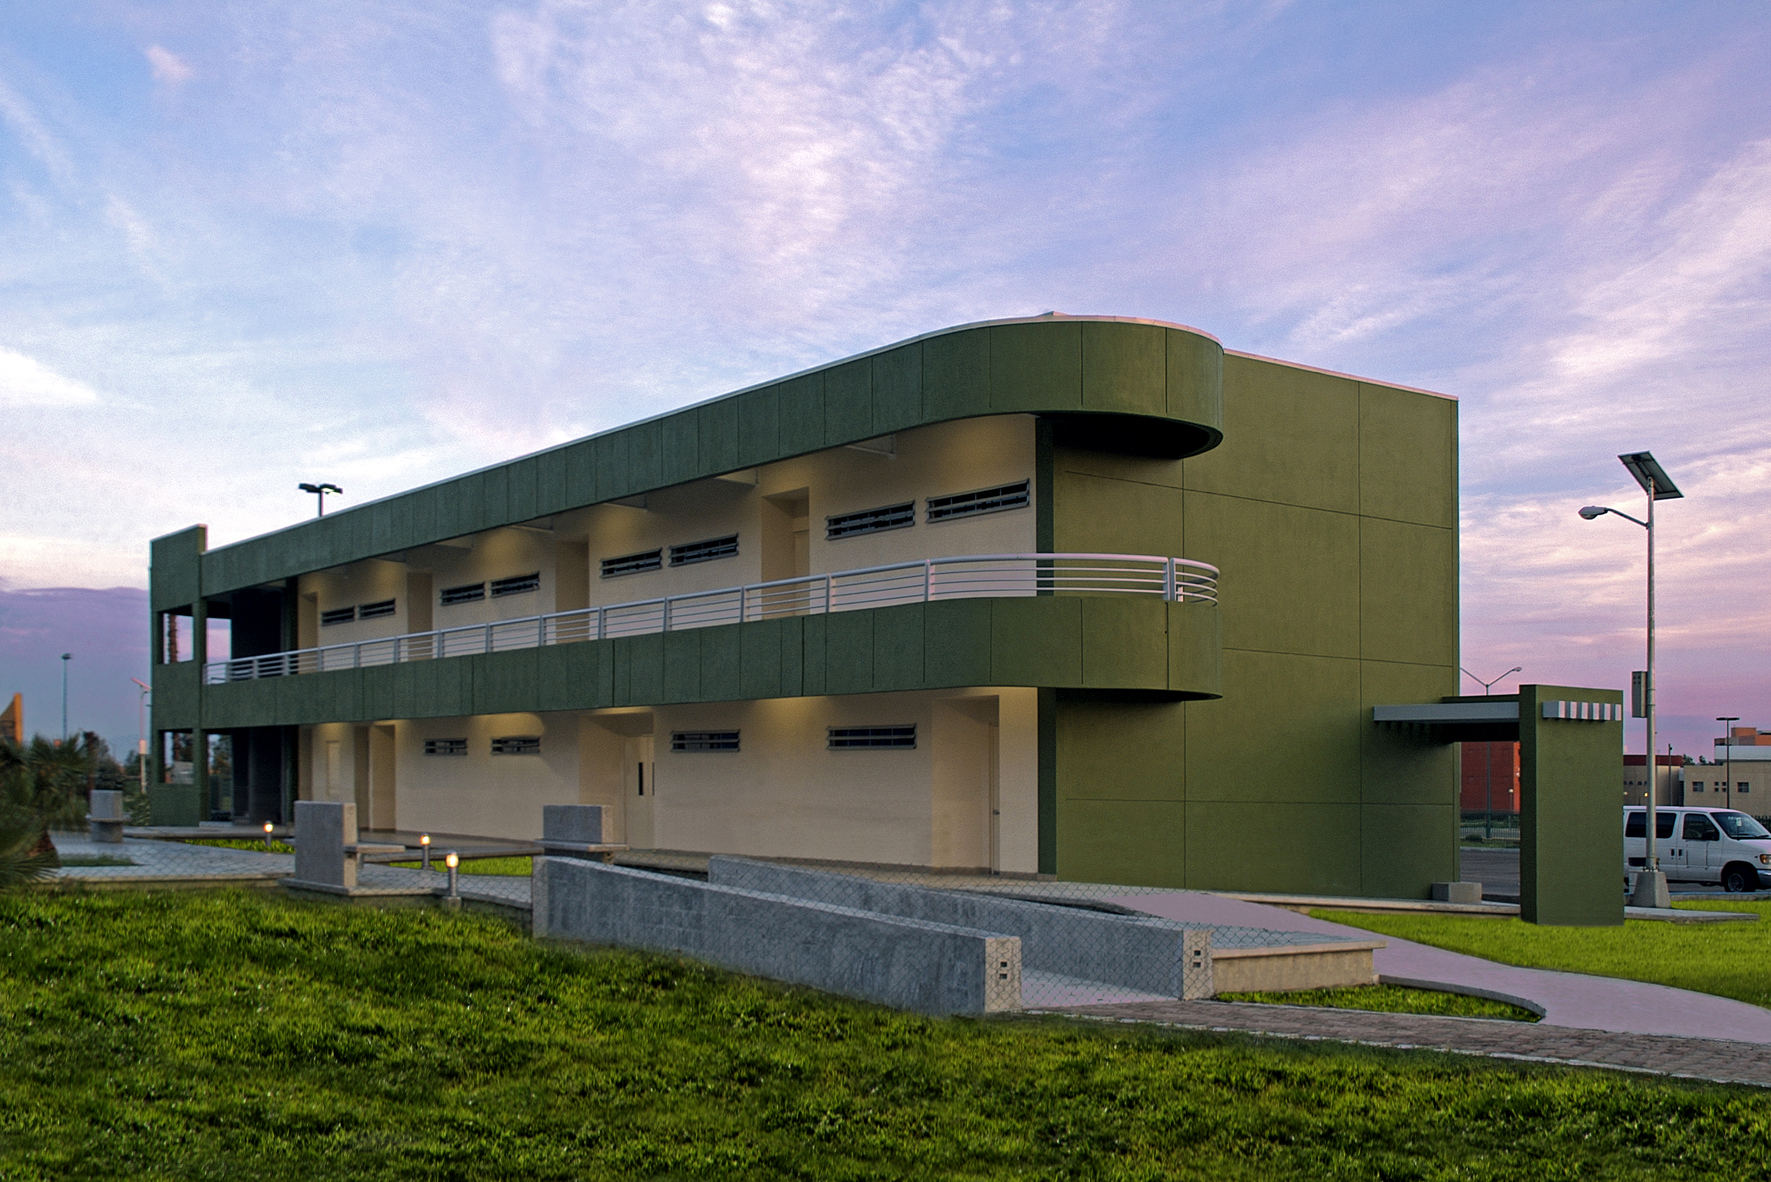 UABC sports facility in Tijuana, Baja California